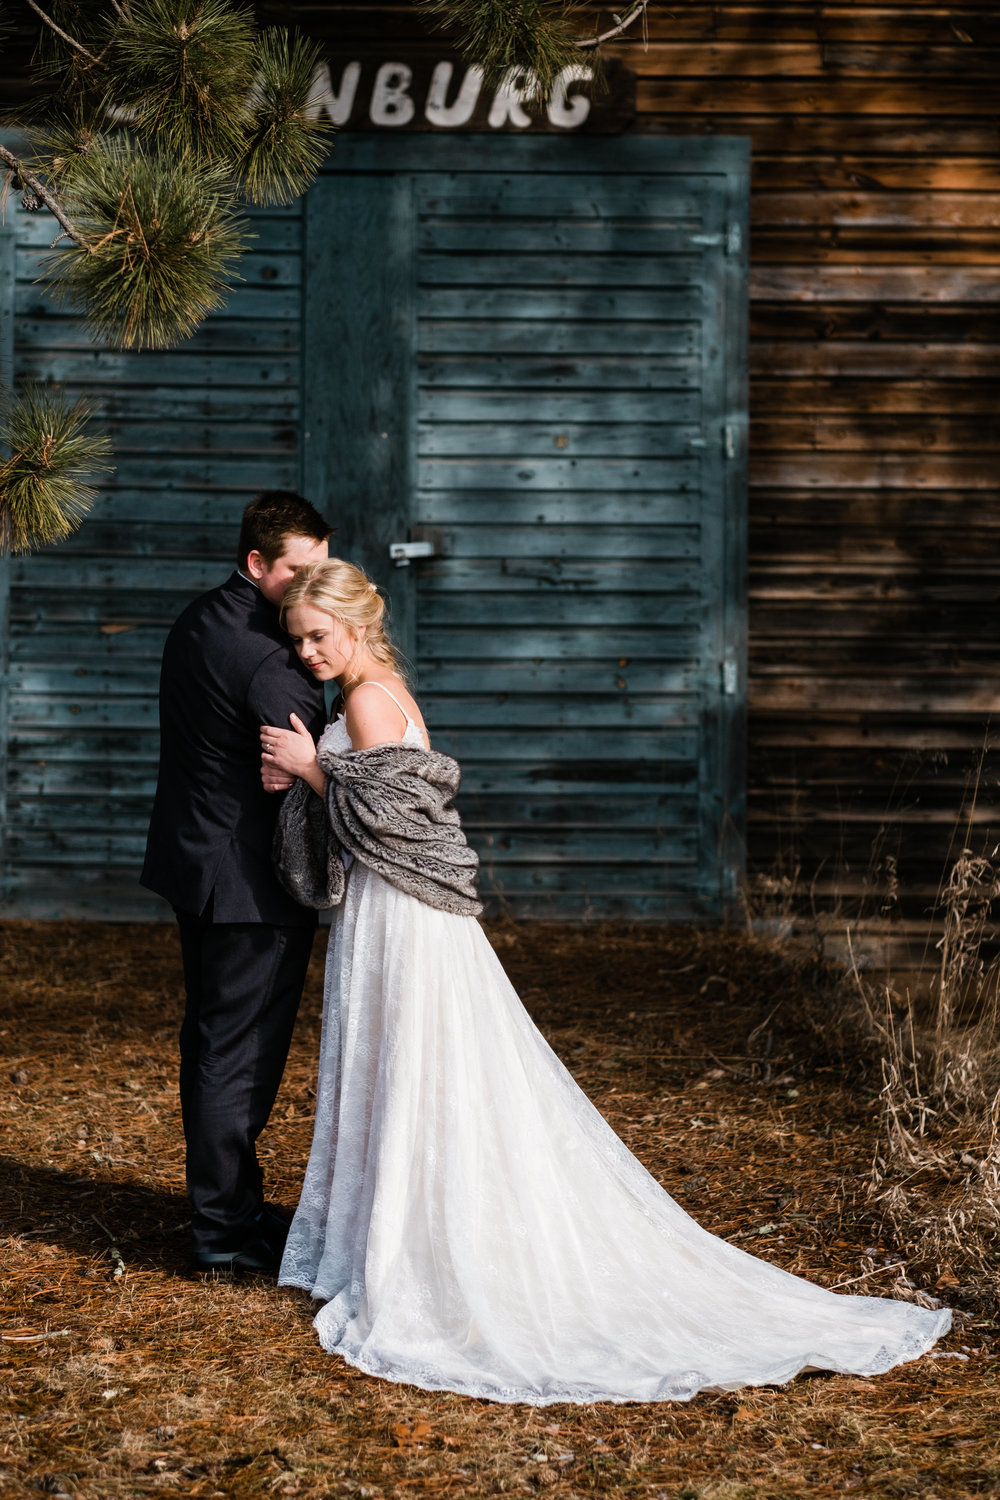 brainerd wedding photographer at a winter barn